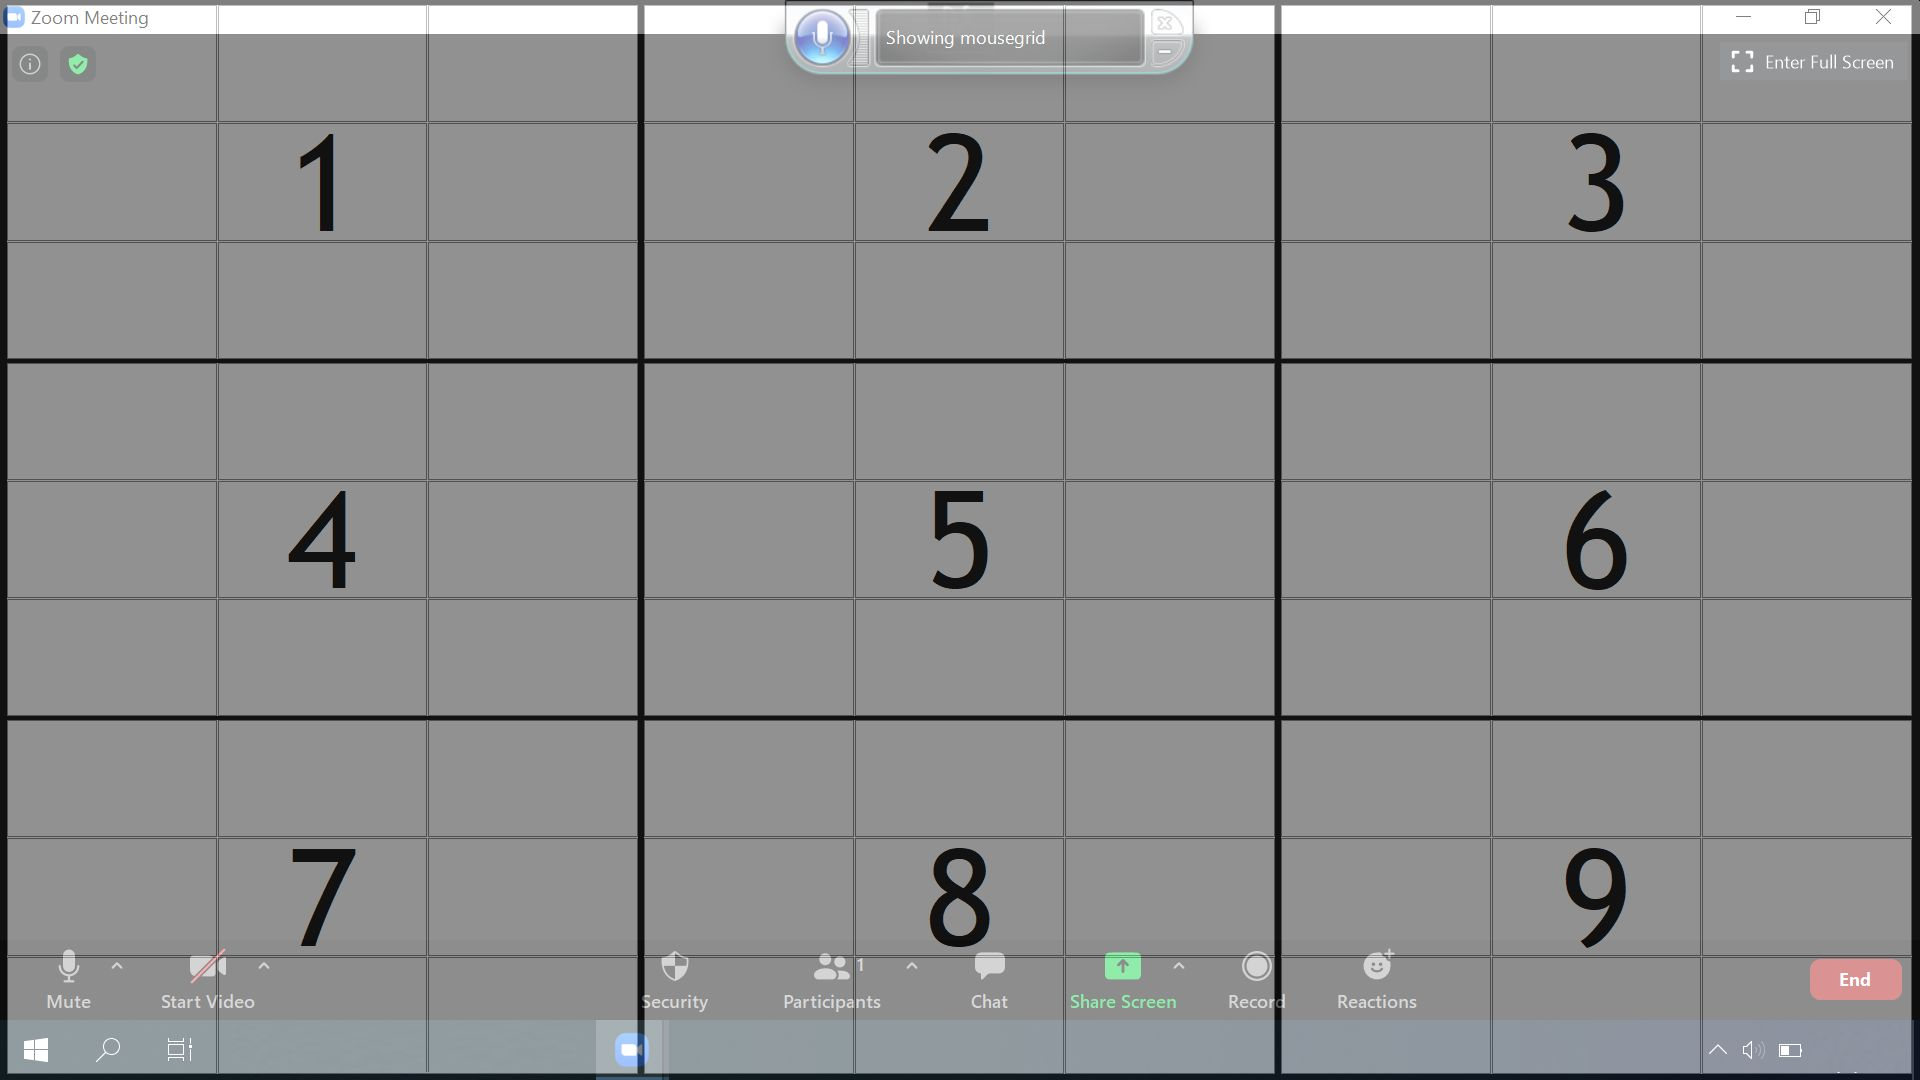 Screenshot of MouseGrid after launching it in Windows Speech Recognition app with voice control. The Mousegrid shown consists of 9 grids of 3 by 3, numbered with 1 to 9, representing the respective areas on the screen.